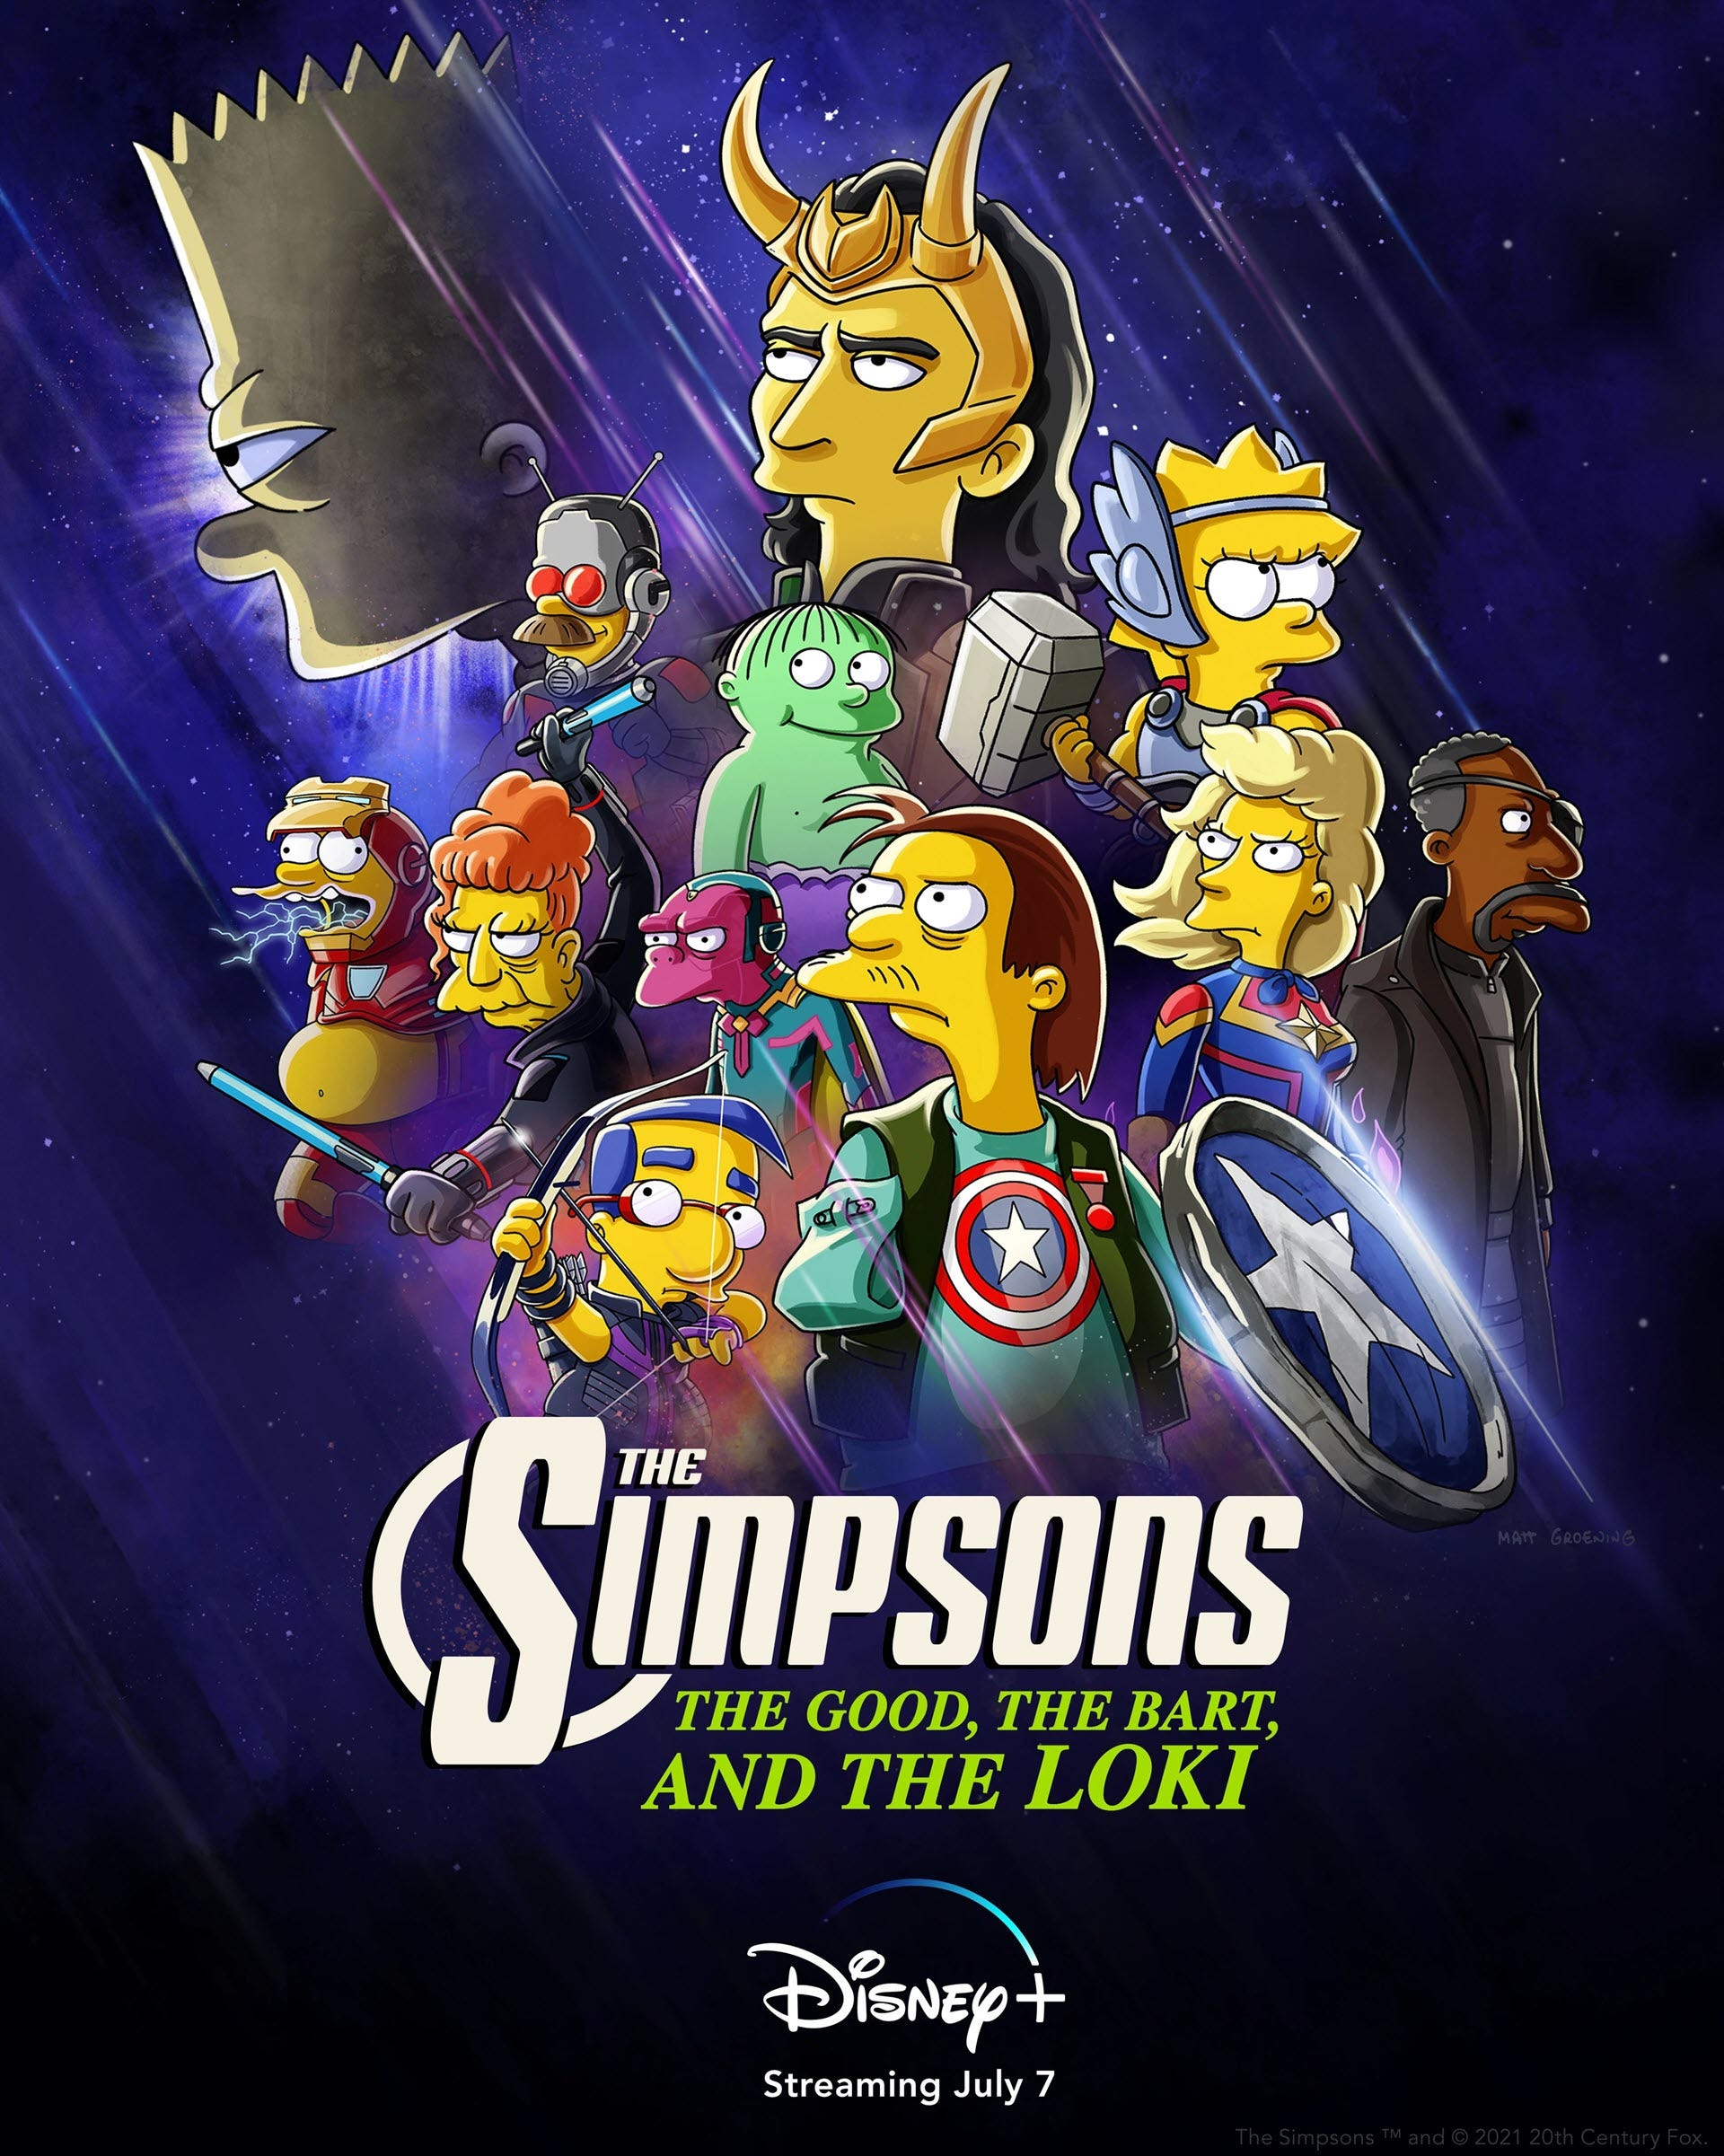 Loki surrounded by characters from 'The Simpsons' dressed as Avengers.